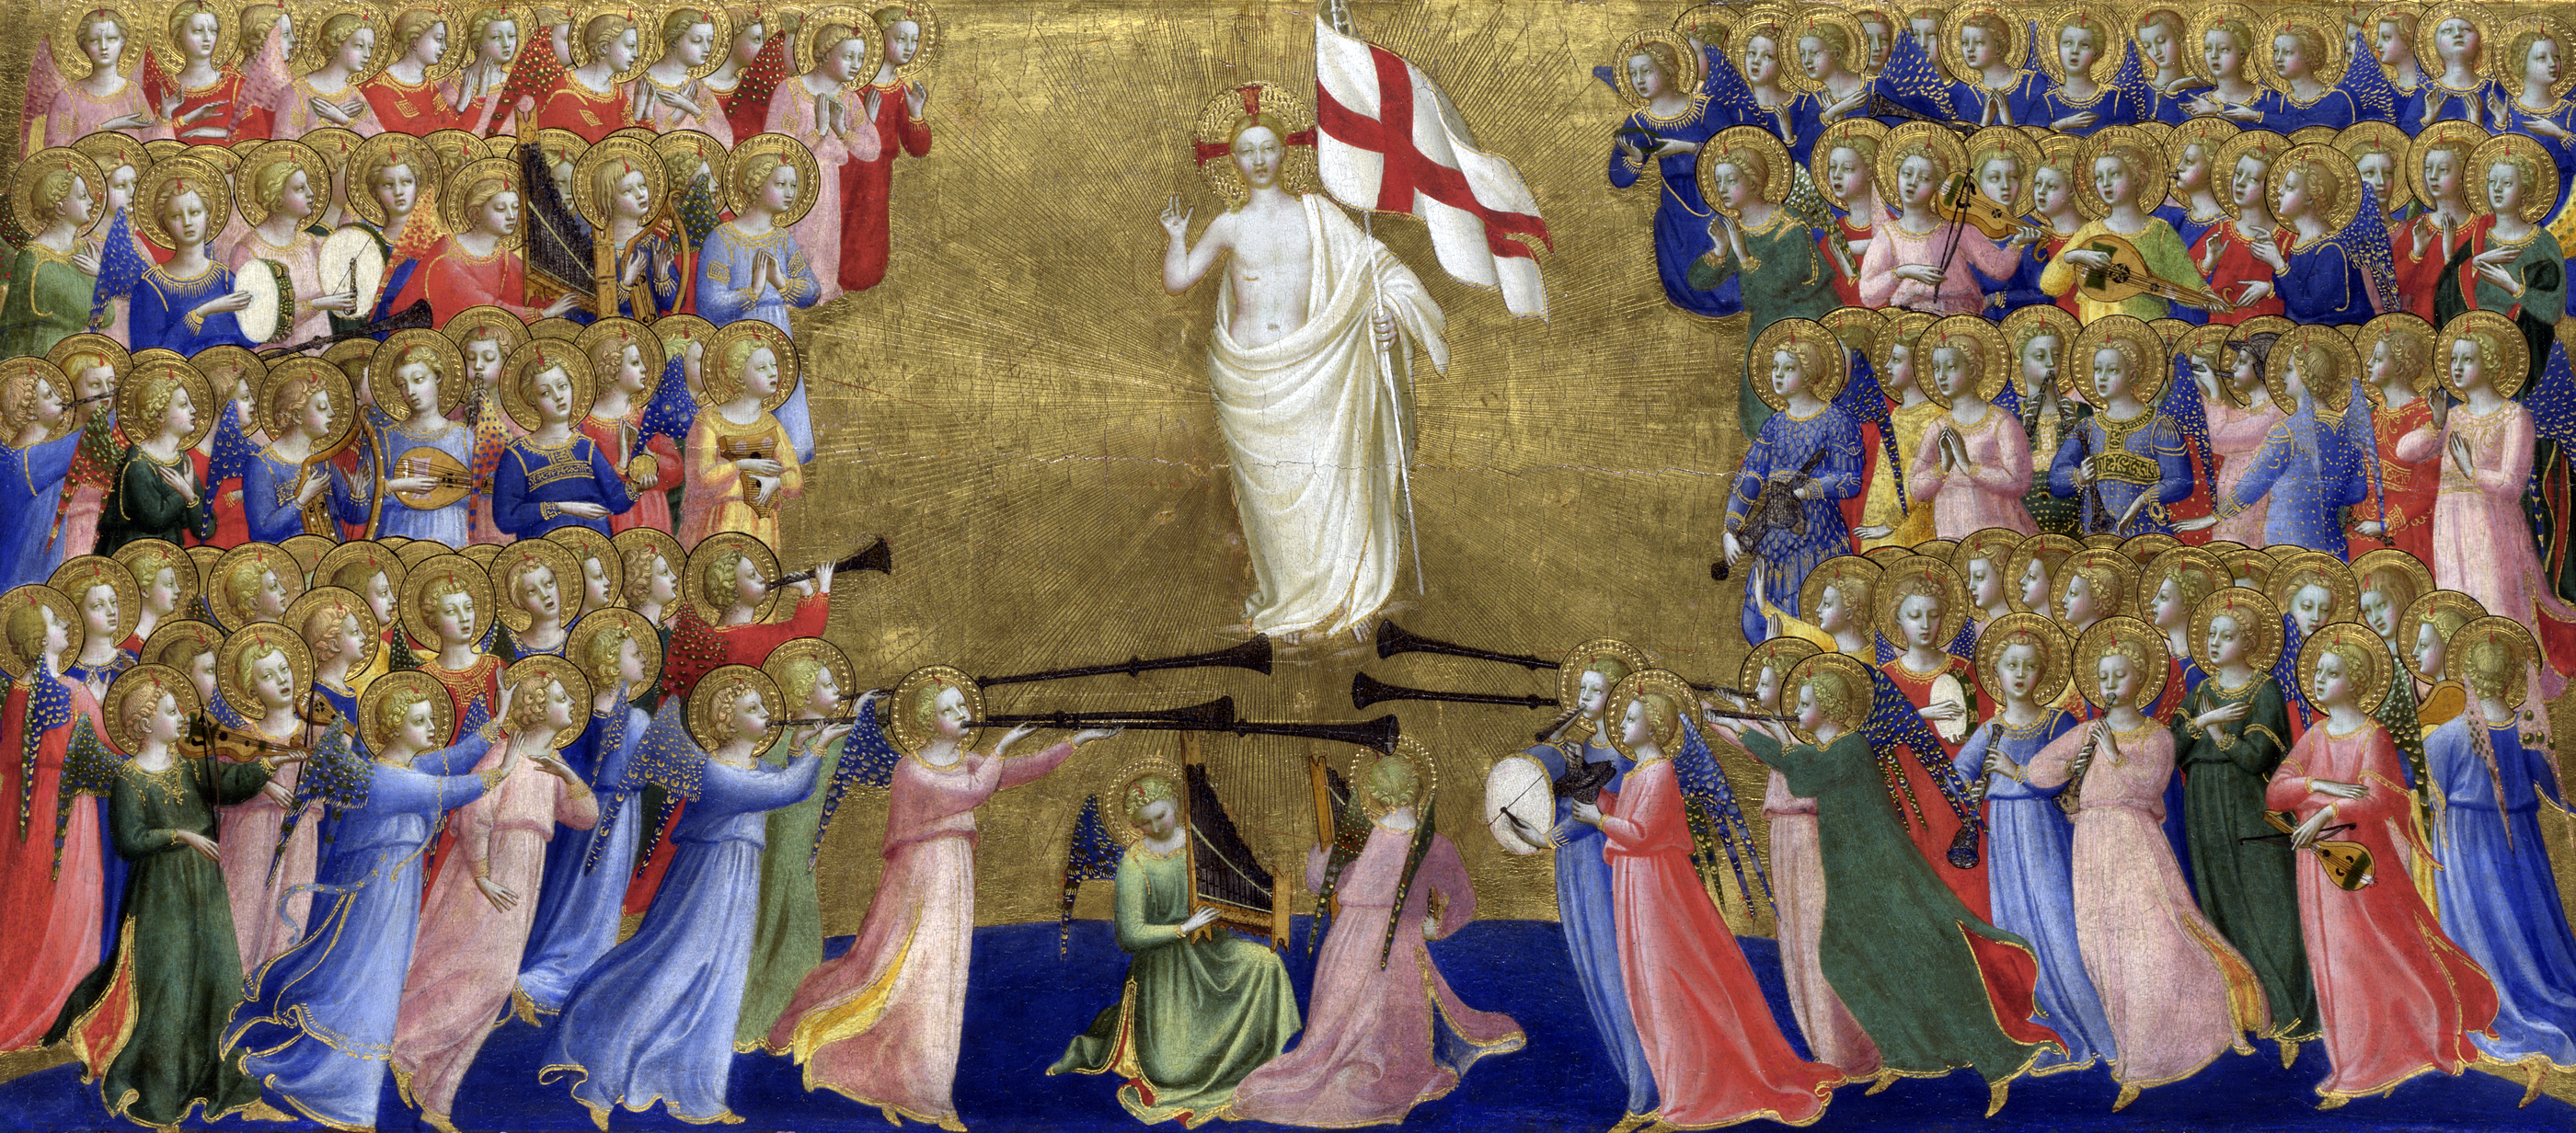 Christ glorified in the court of heaven, Fiesole San Domenico Altarpiece (detail), by Fra Angelico, c. 1424. National Gallery, London.